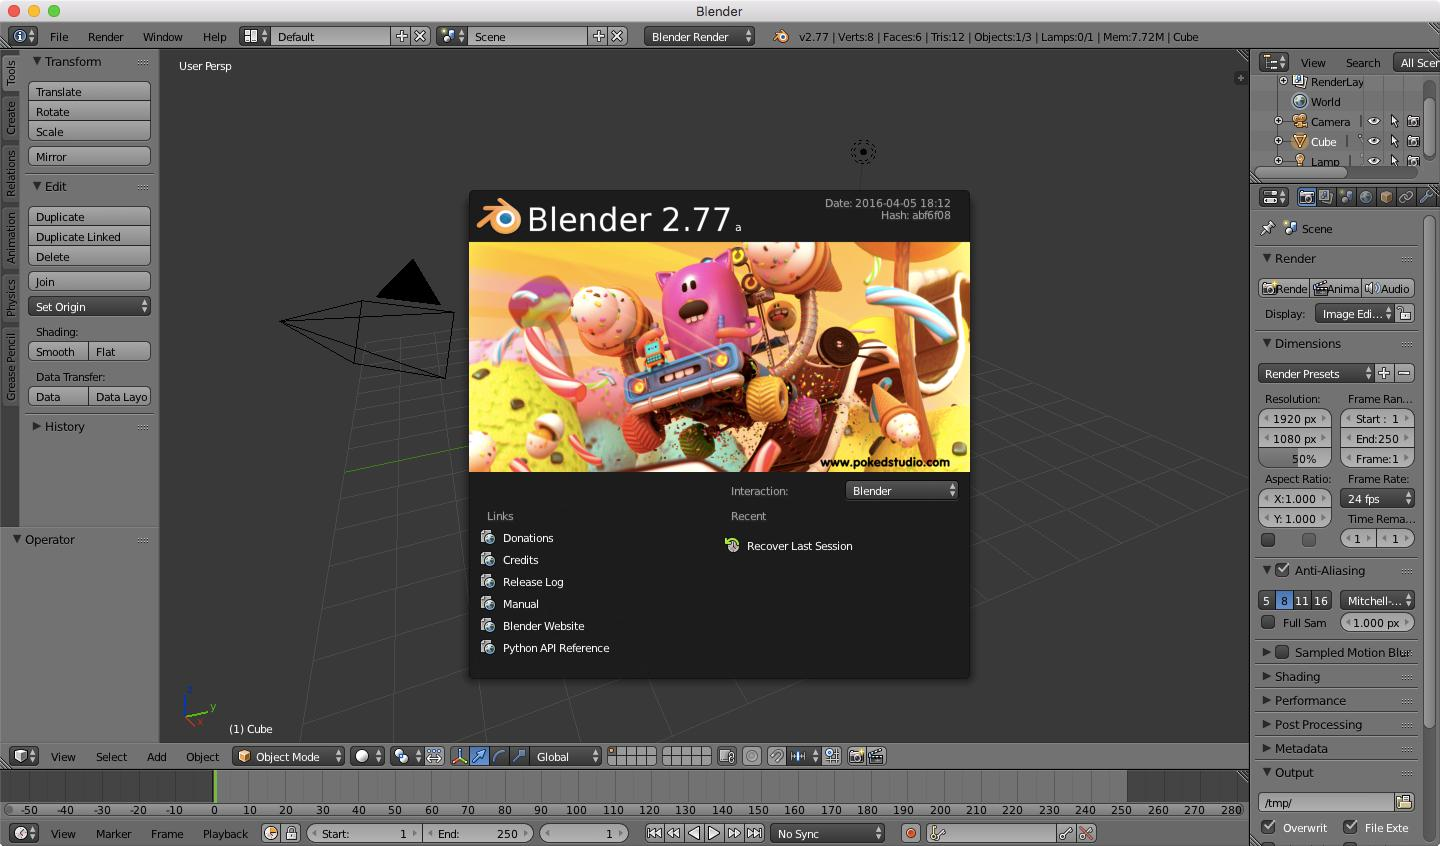 blender video editing software review